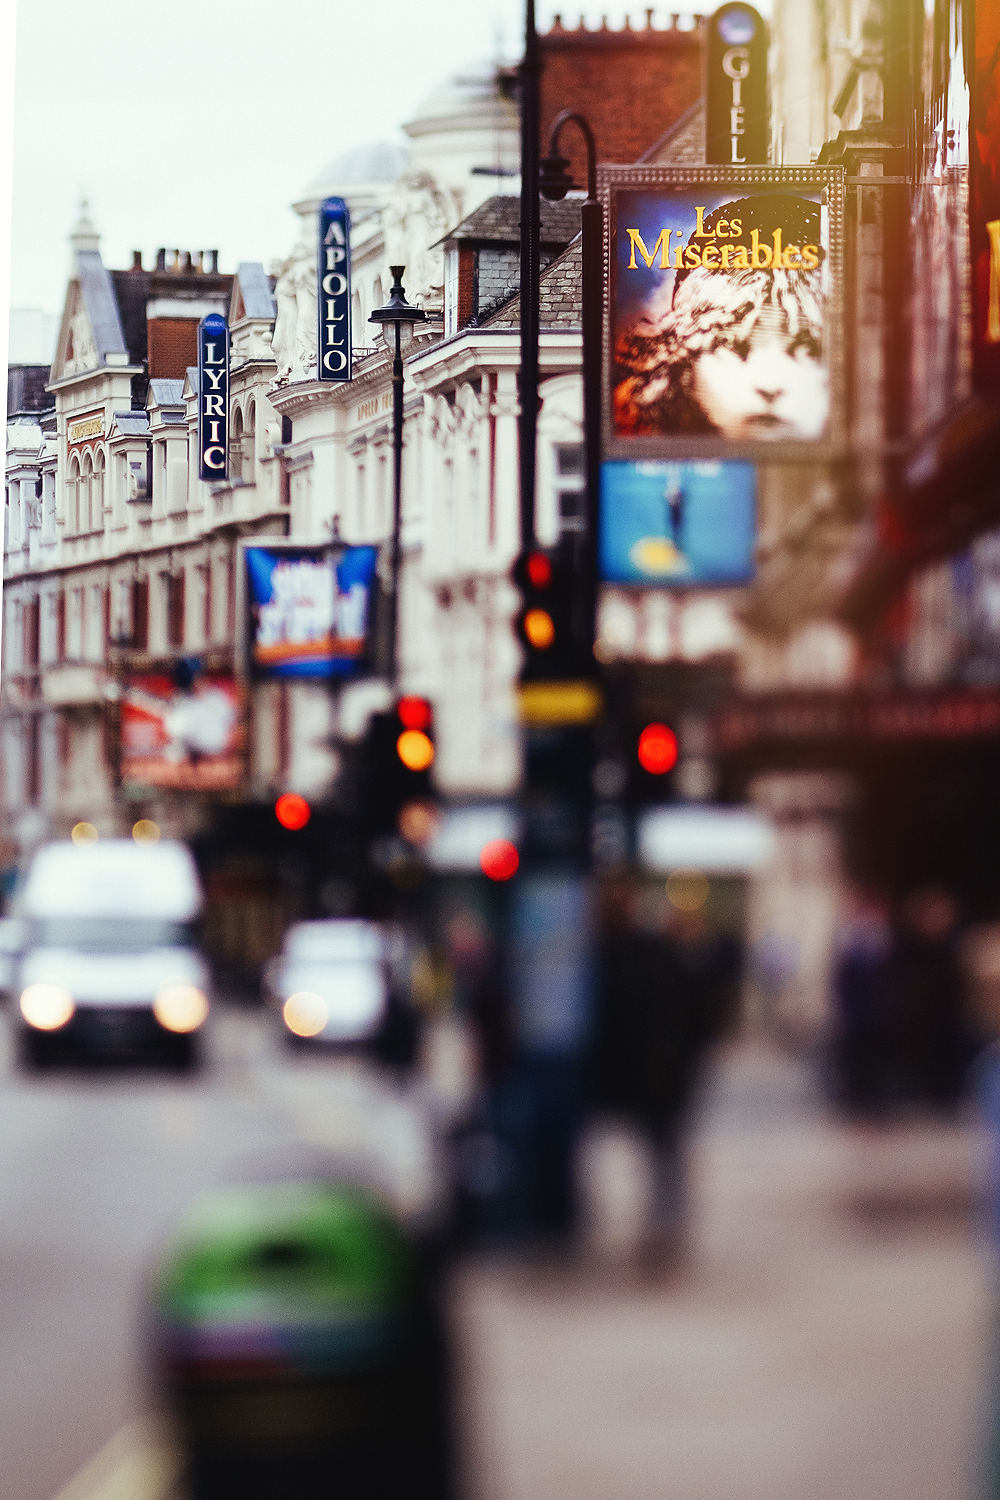 lensbaby edge 80 image of the Apollo theater in London by Willie Kers